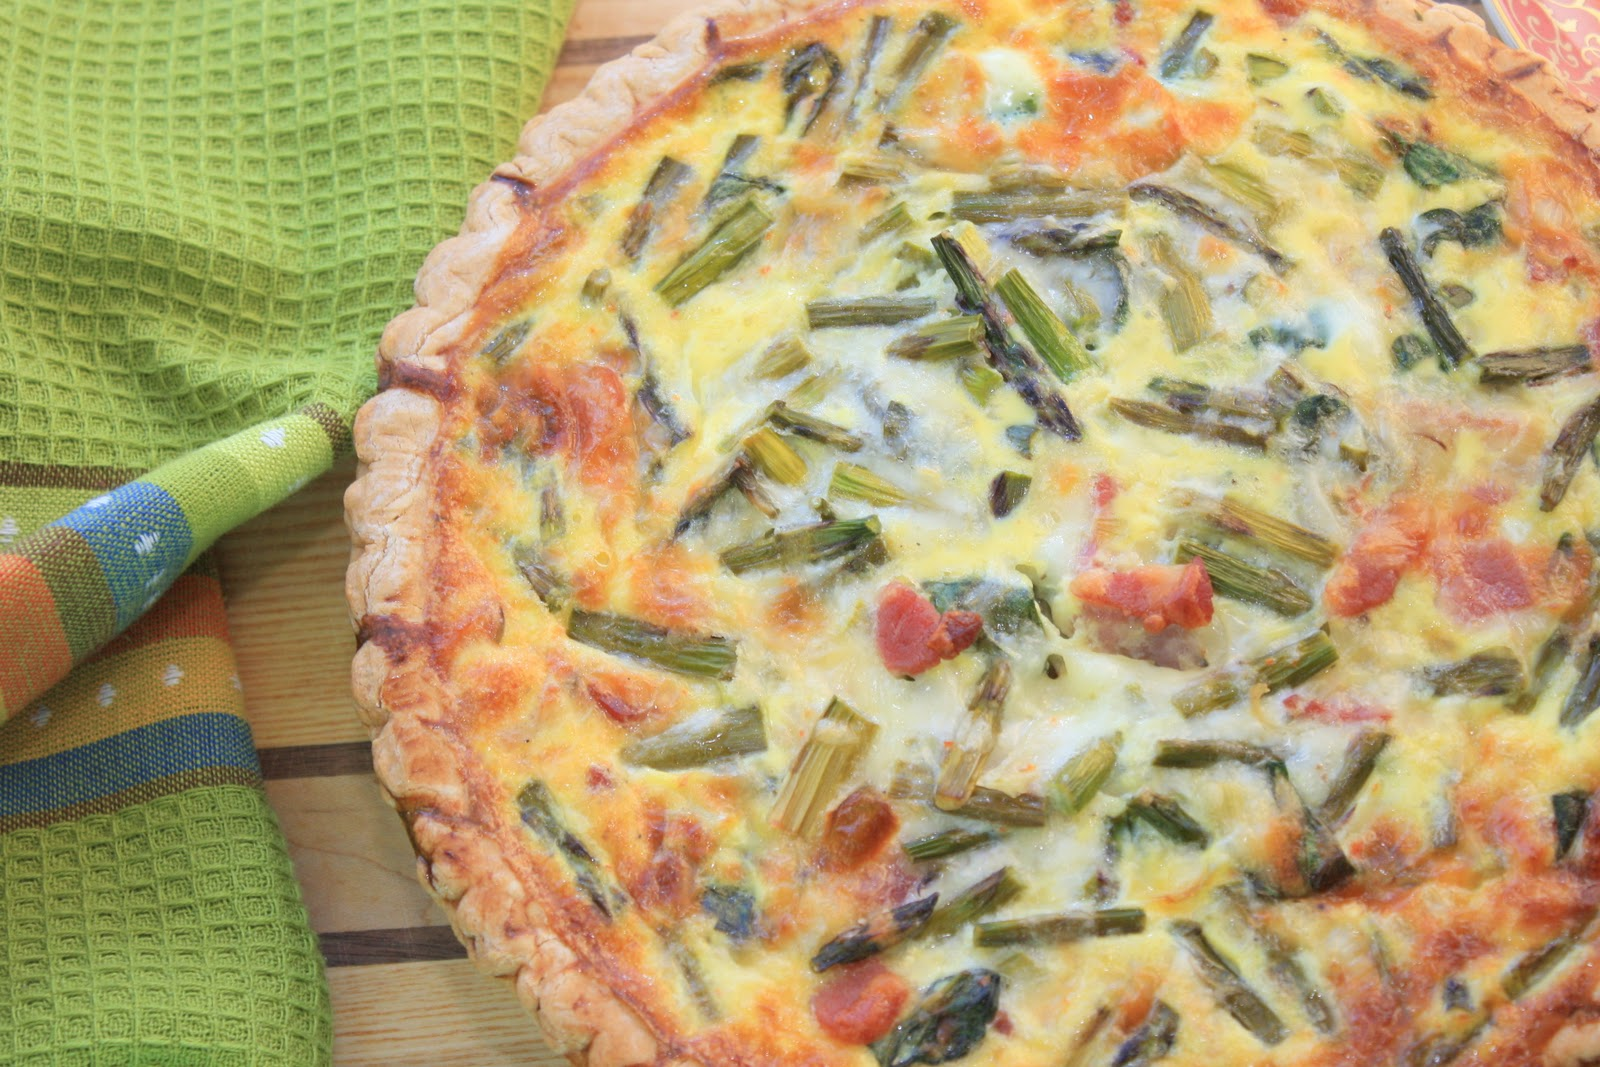 This is a fact: I haven't made a quiche in over a year.